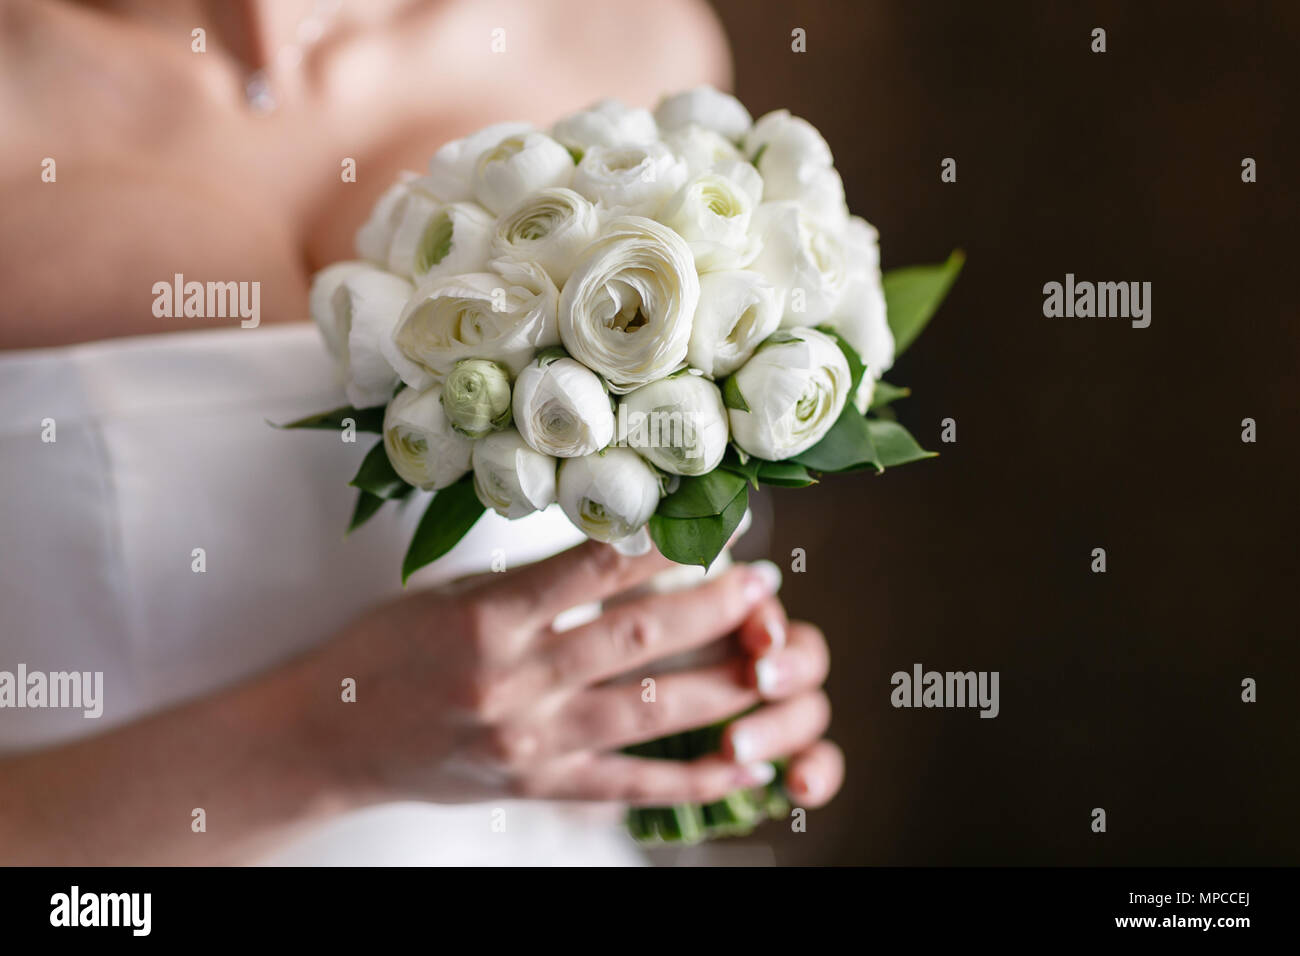 Wedding bride bouquet of fresh floral. White ranunculus flowers in womans hand. - Stock Image